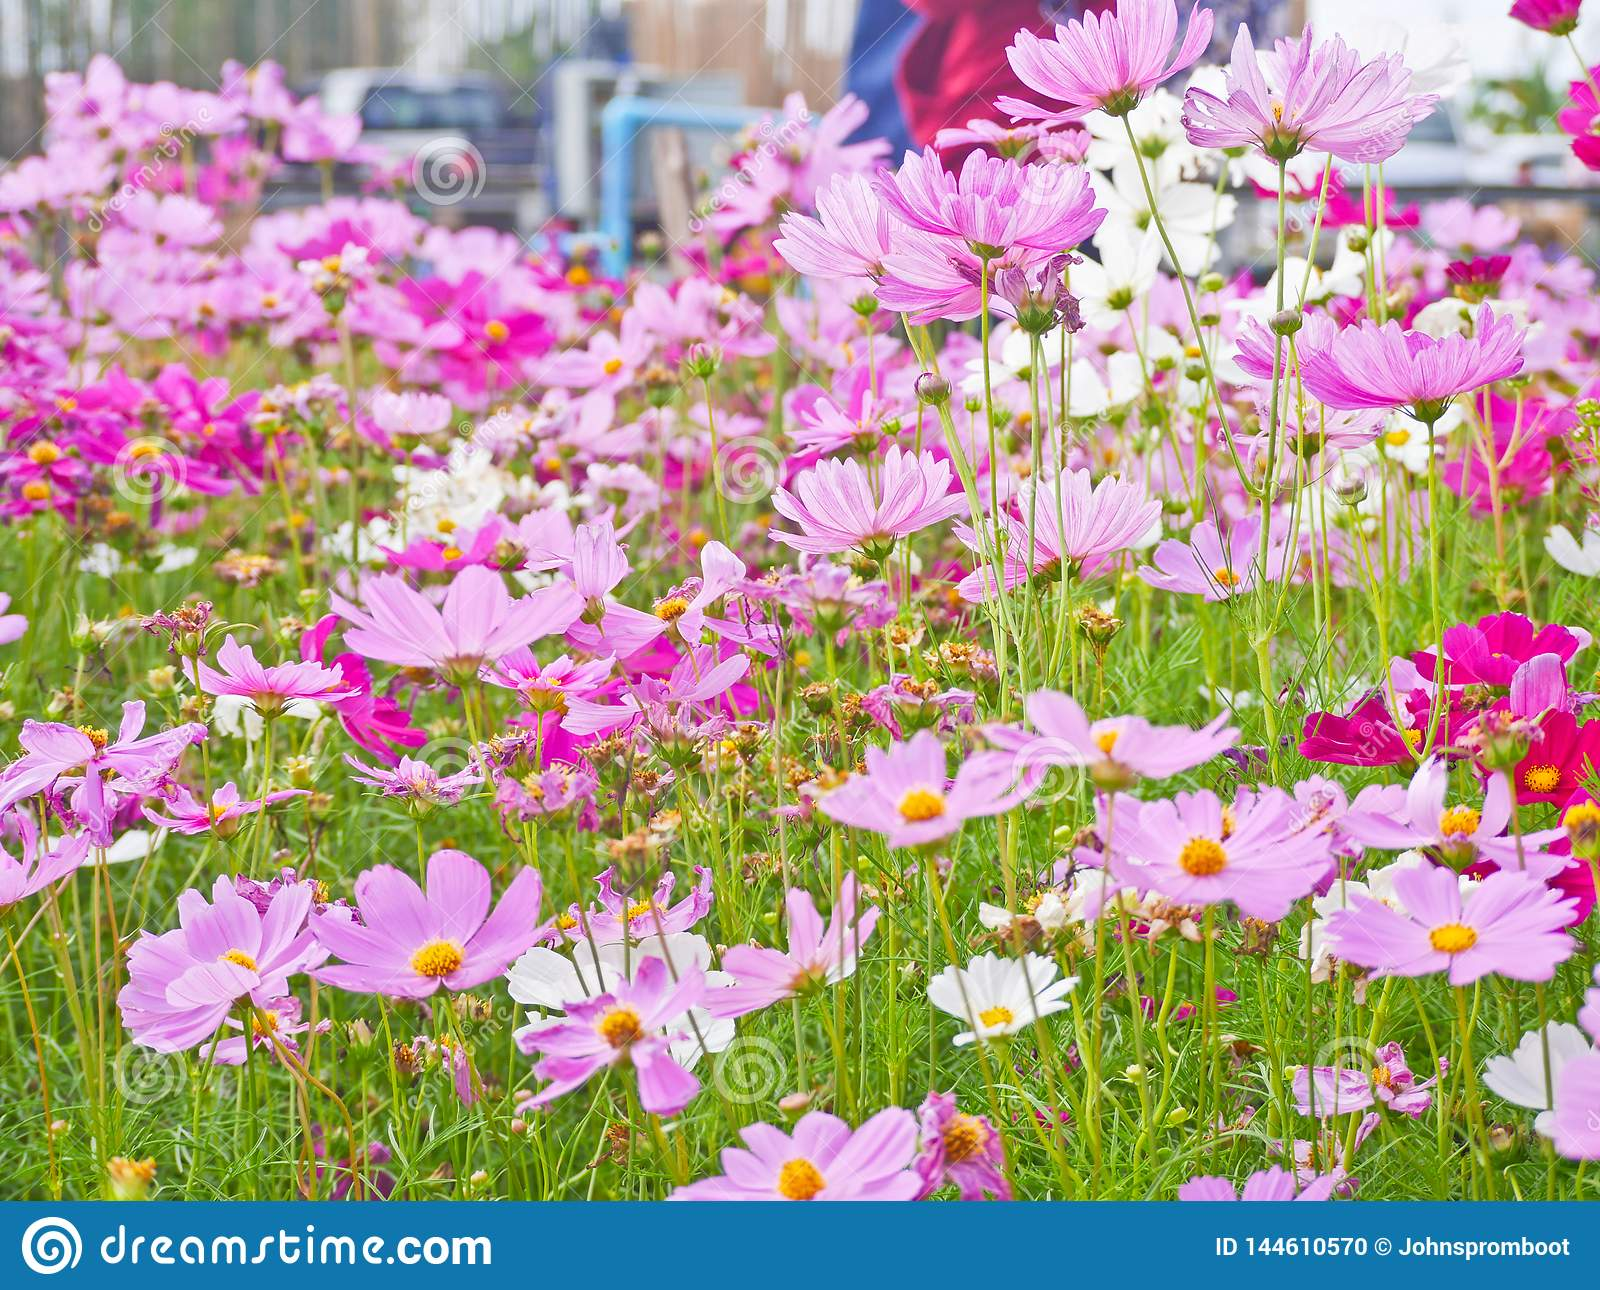 Cosmos flowers in the field  tourist love to see